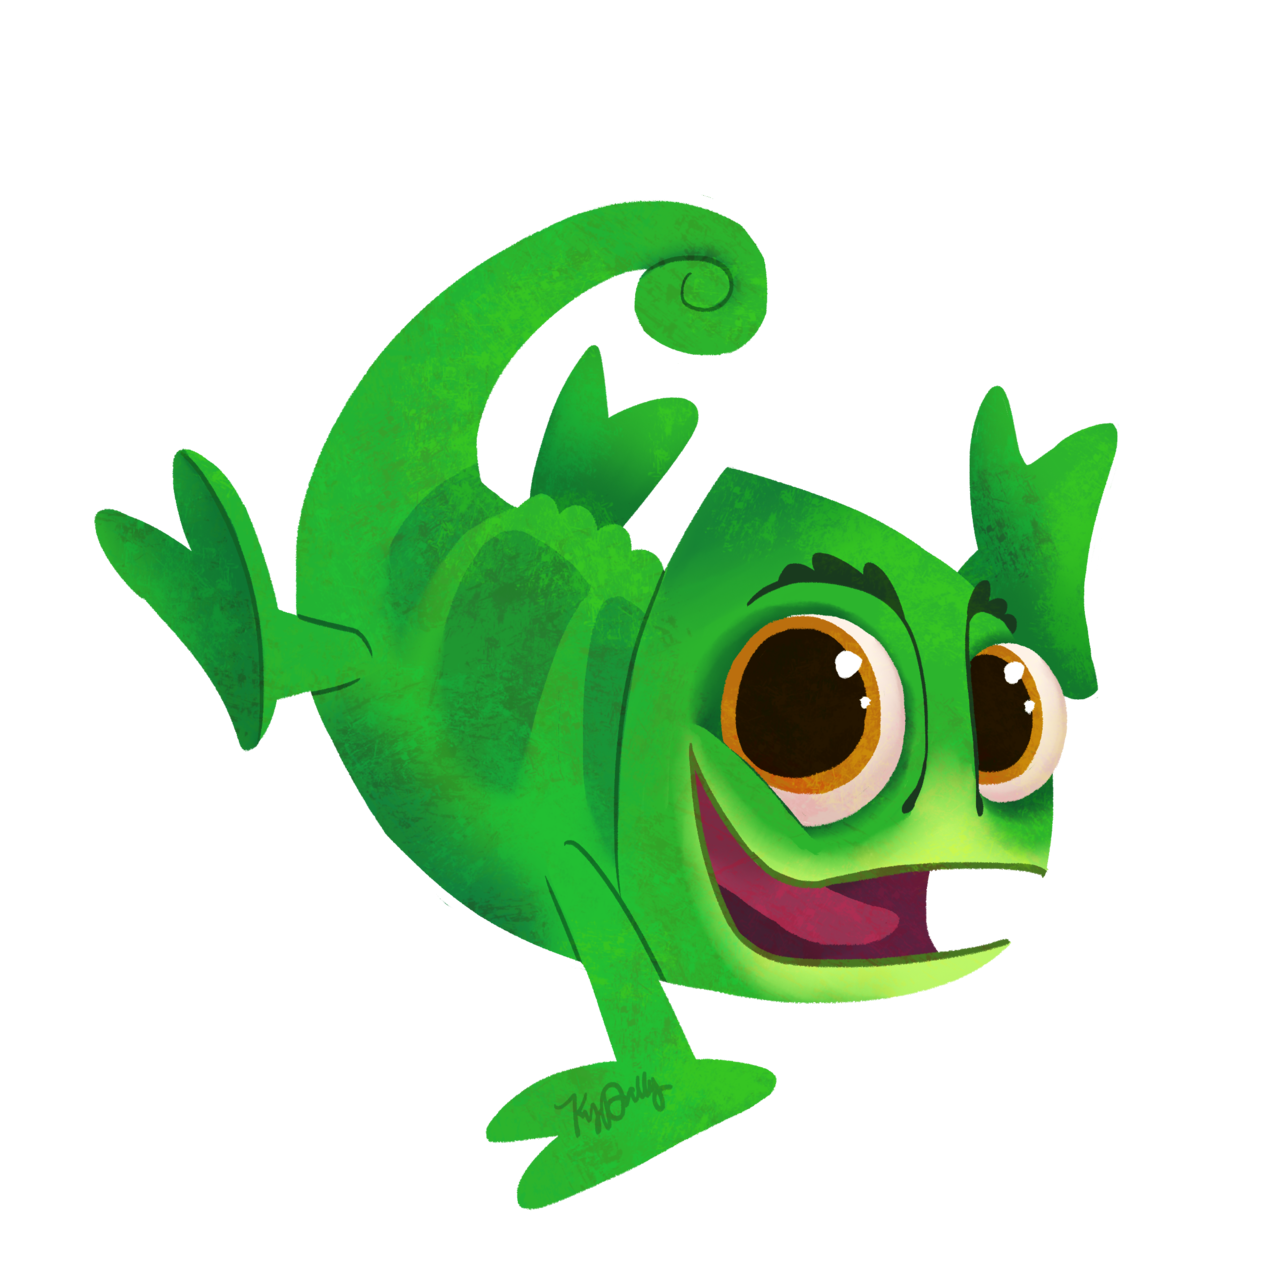 png freeuse download Here s the final. Chameleon clipart tongue.